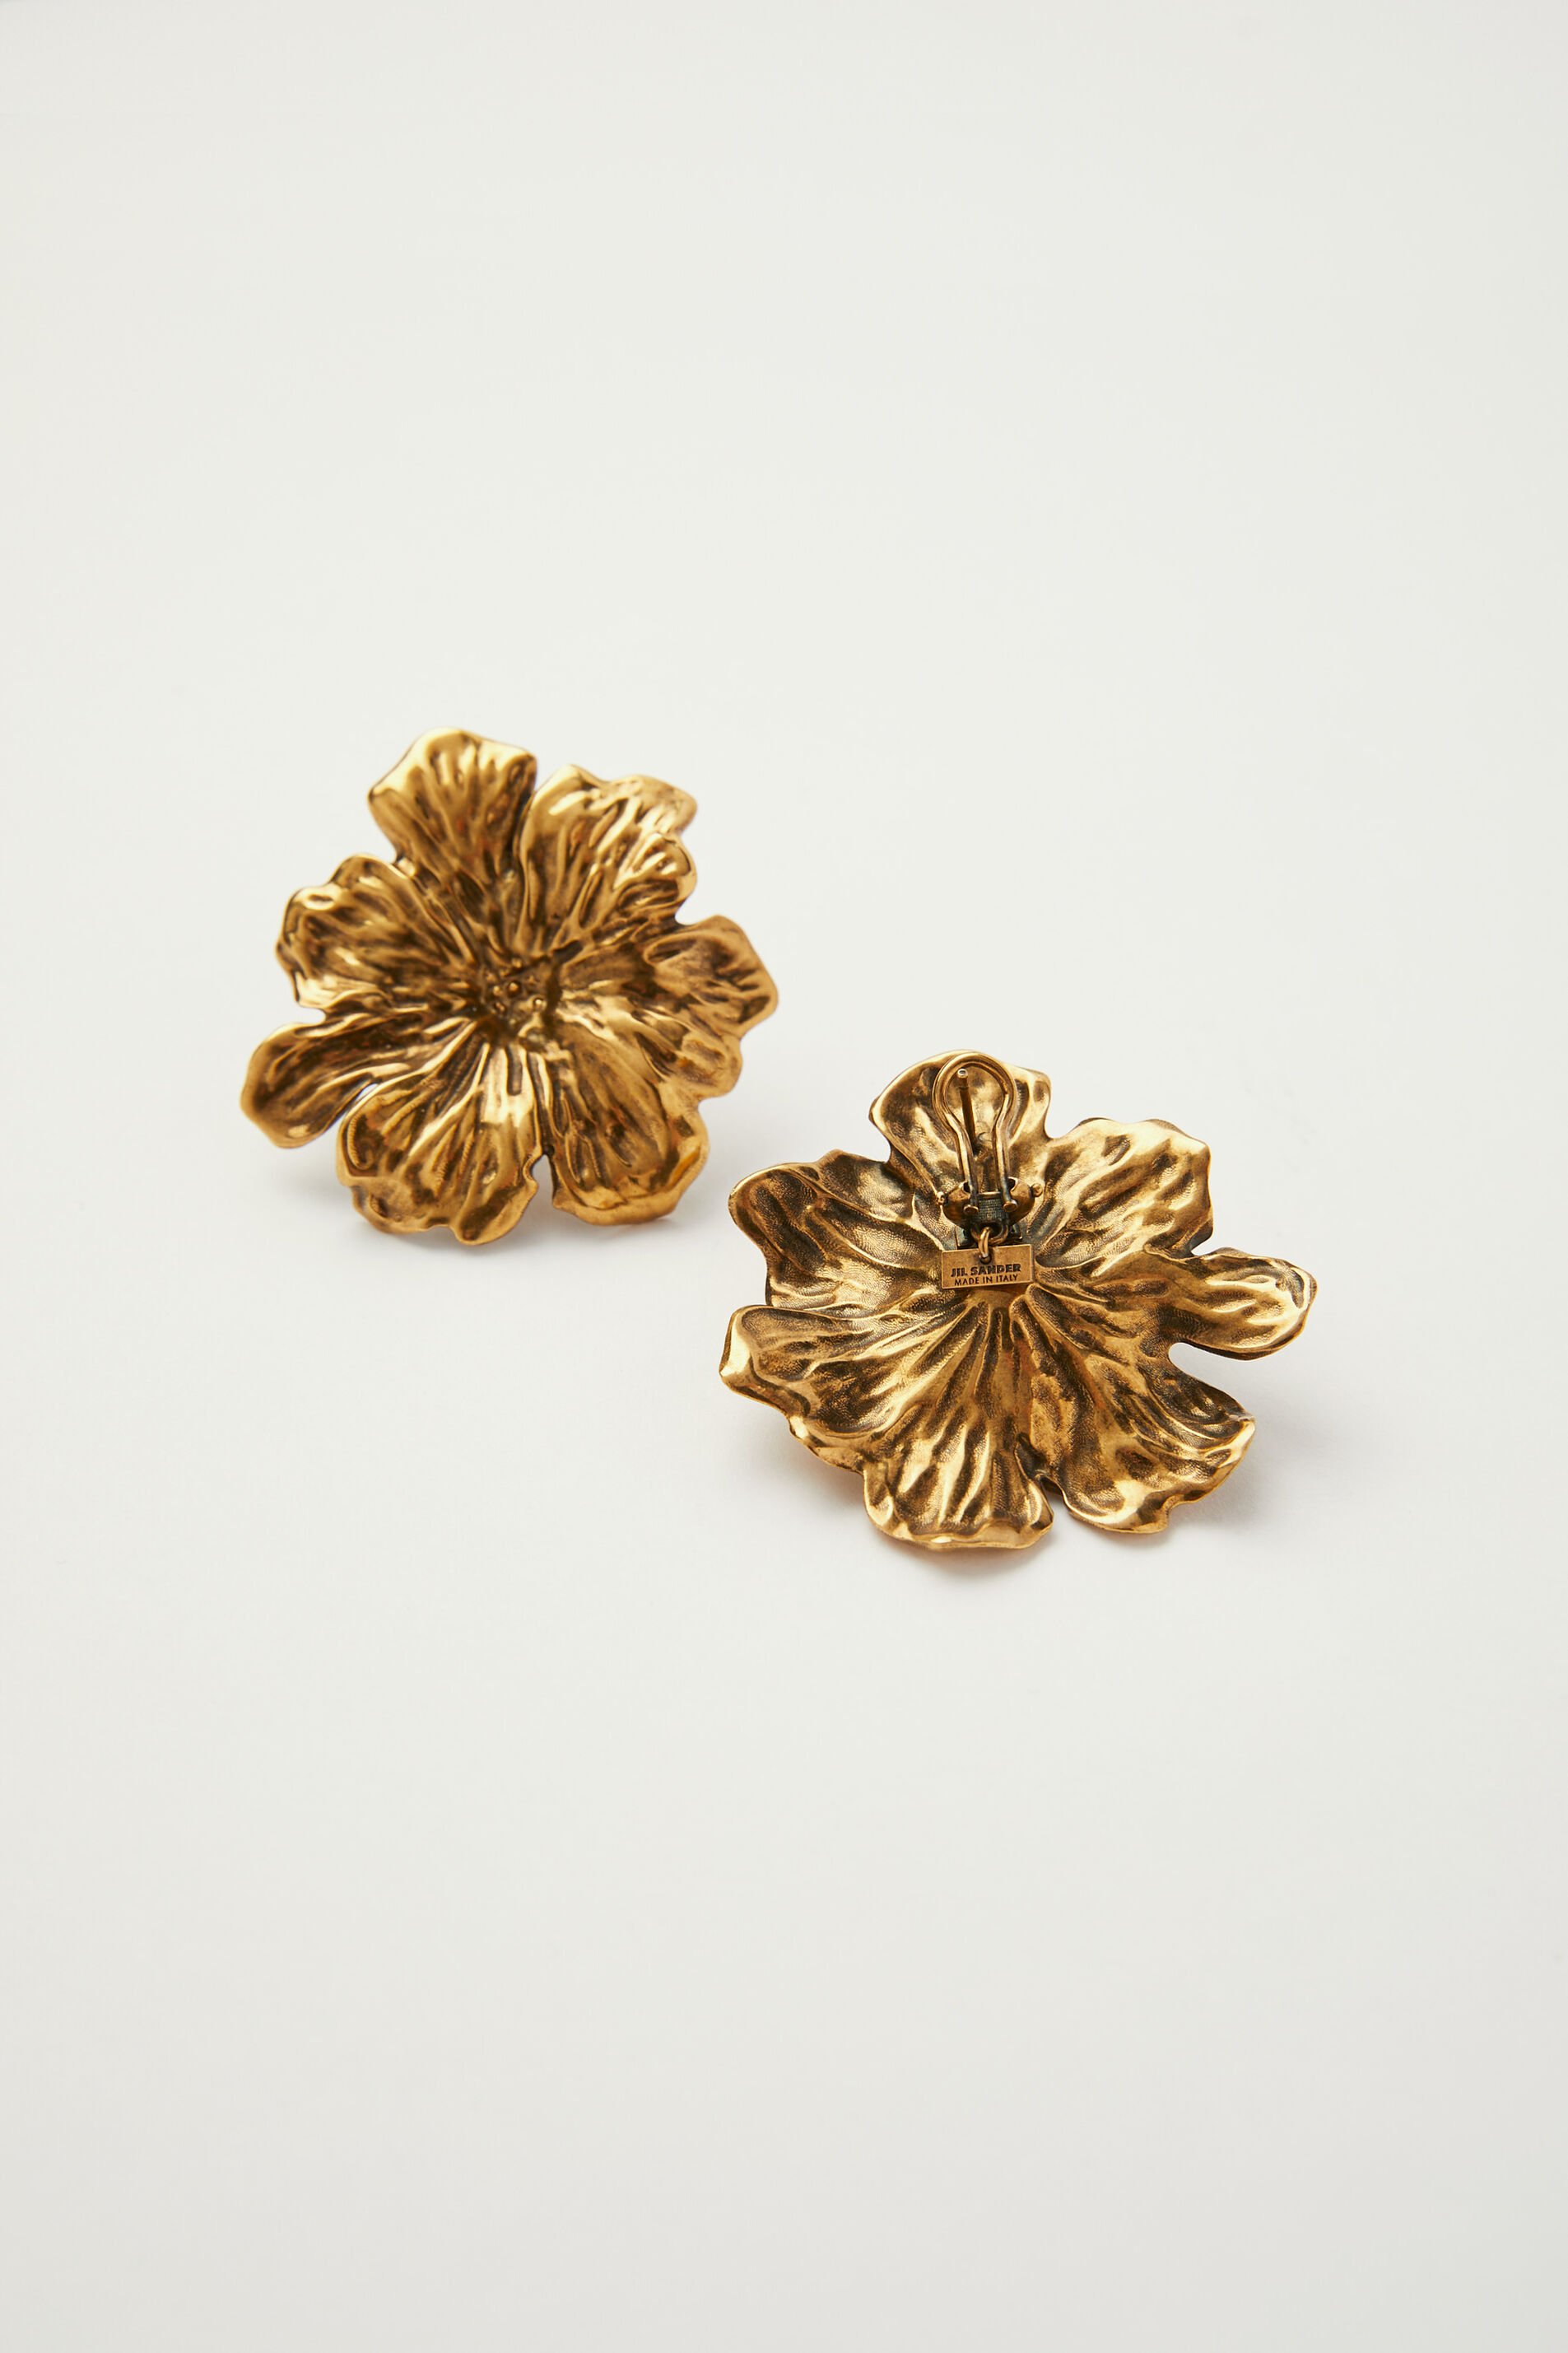 Earrings, gold, large